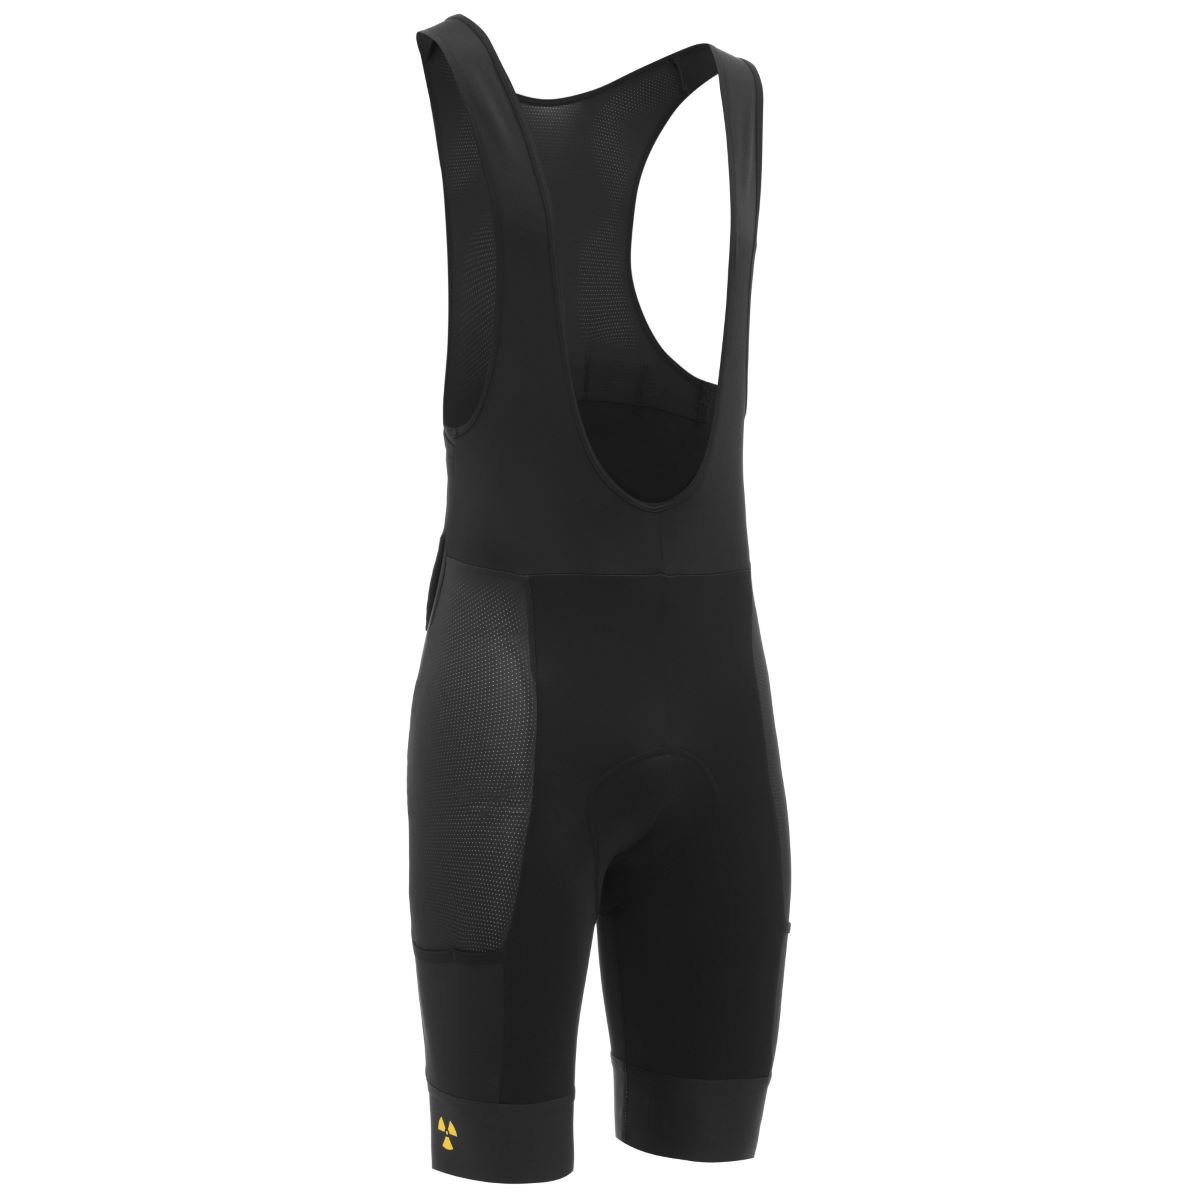 Nukeproof Nukeproof Blackline Storage Bib Shorts   Bib Shorts